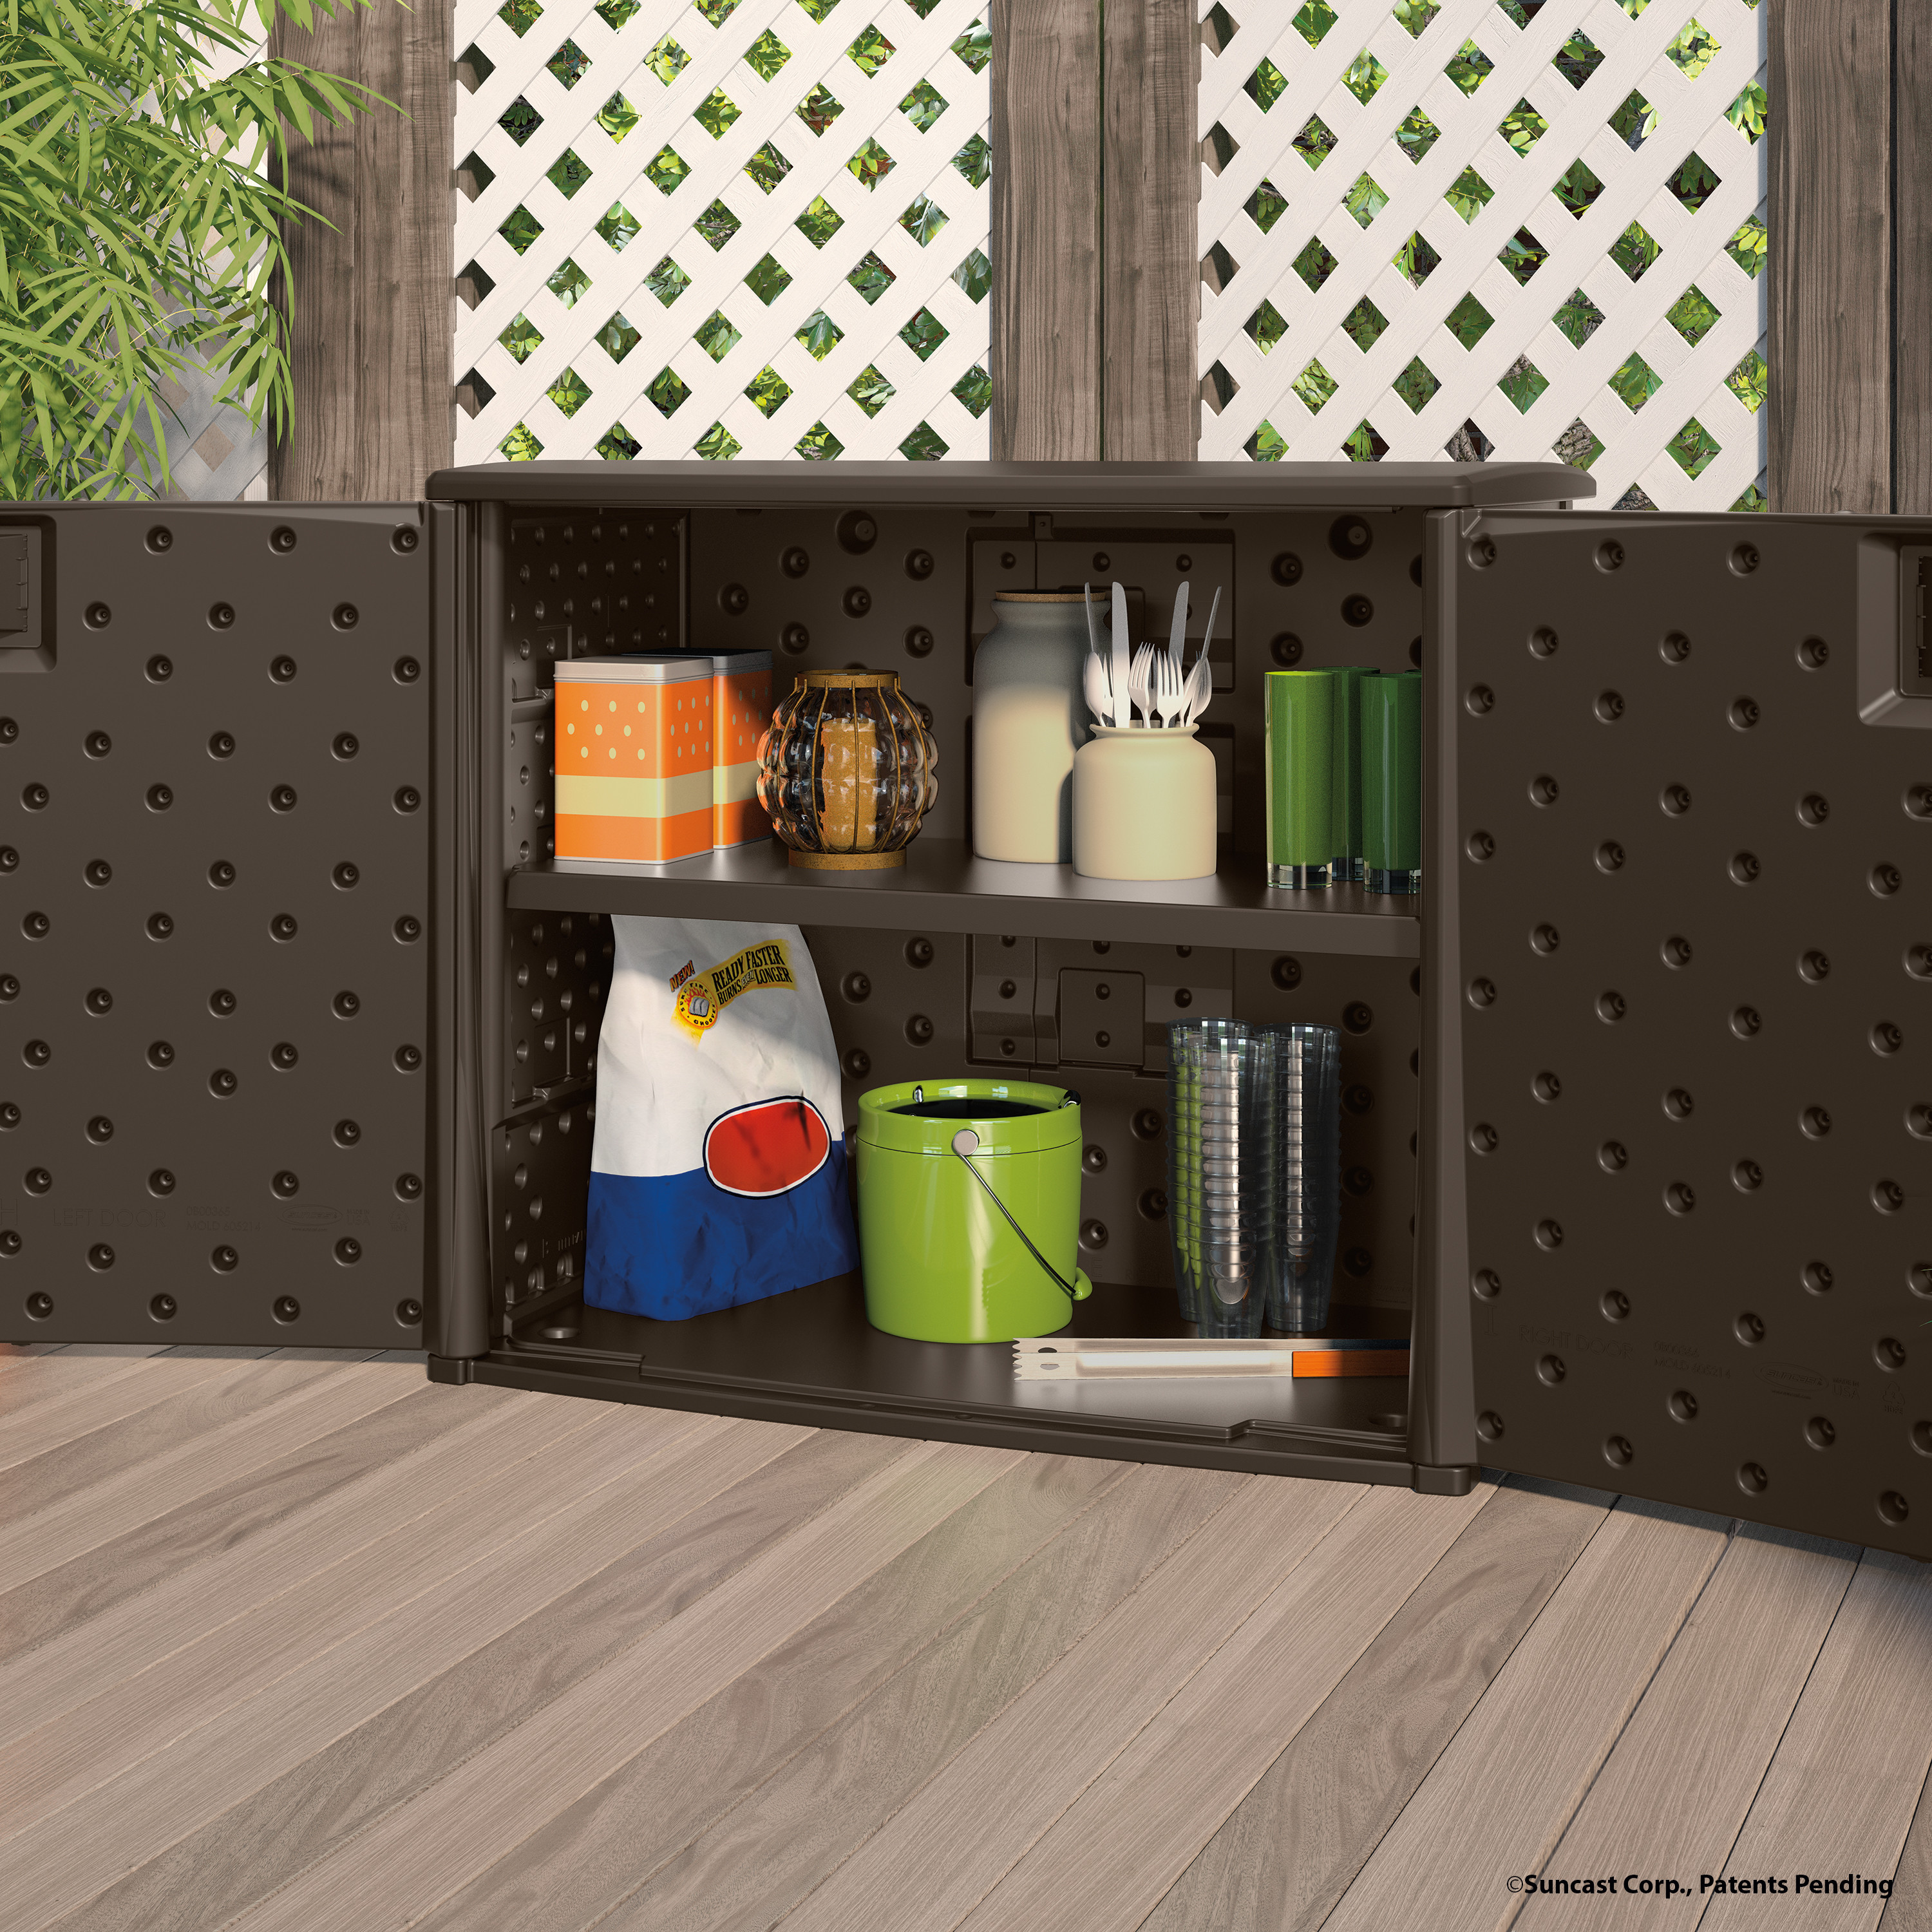 Best ideas about Garden Storage Cabinet . Save or Pin Suncast 97 Gallon Resin Storage Cabinet & Reviews Now.